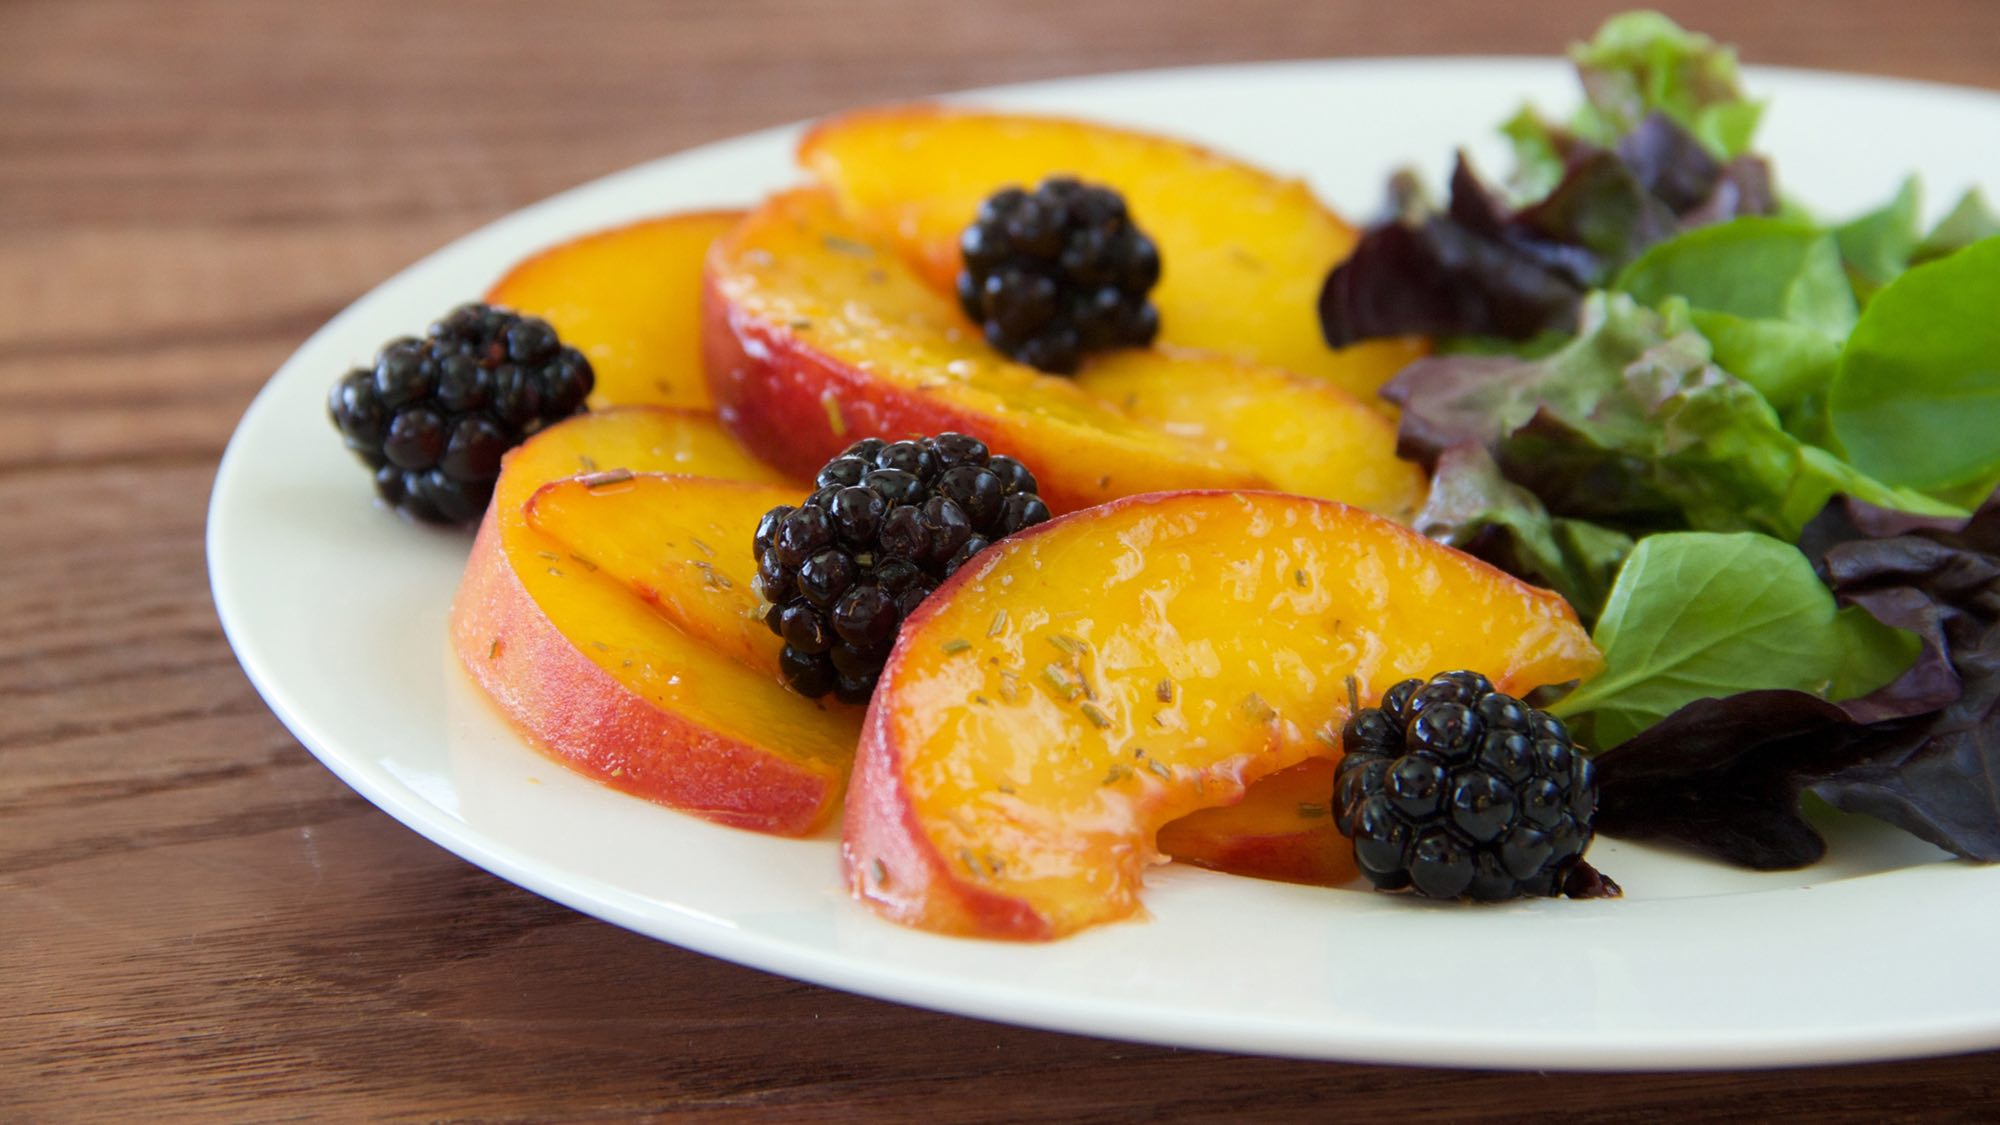 McCormick Rosemary Quick-Pickled Peaches and Blackberries